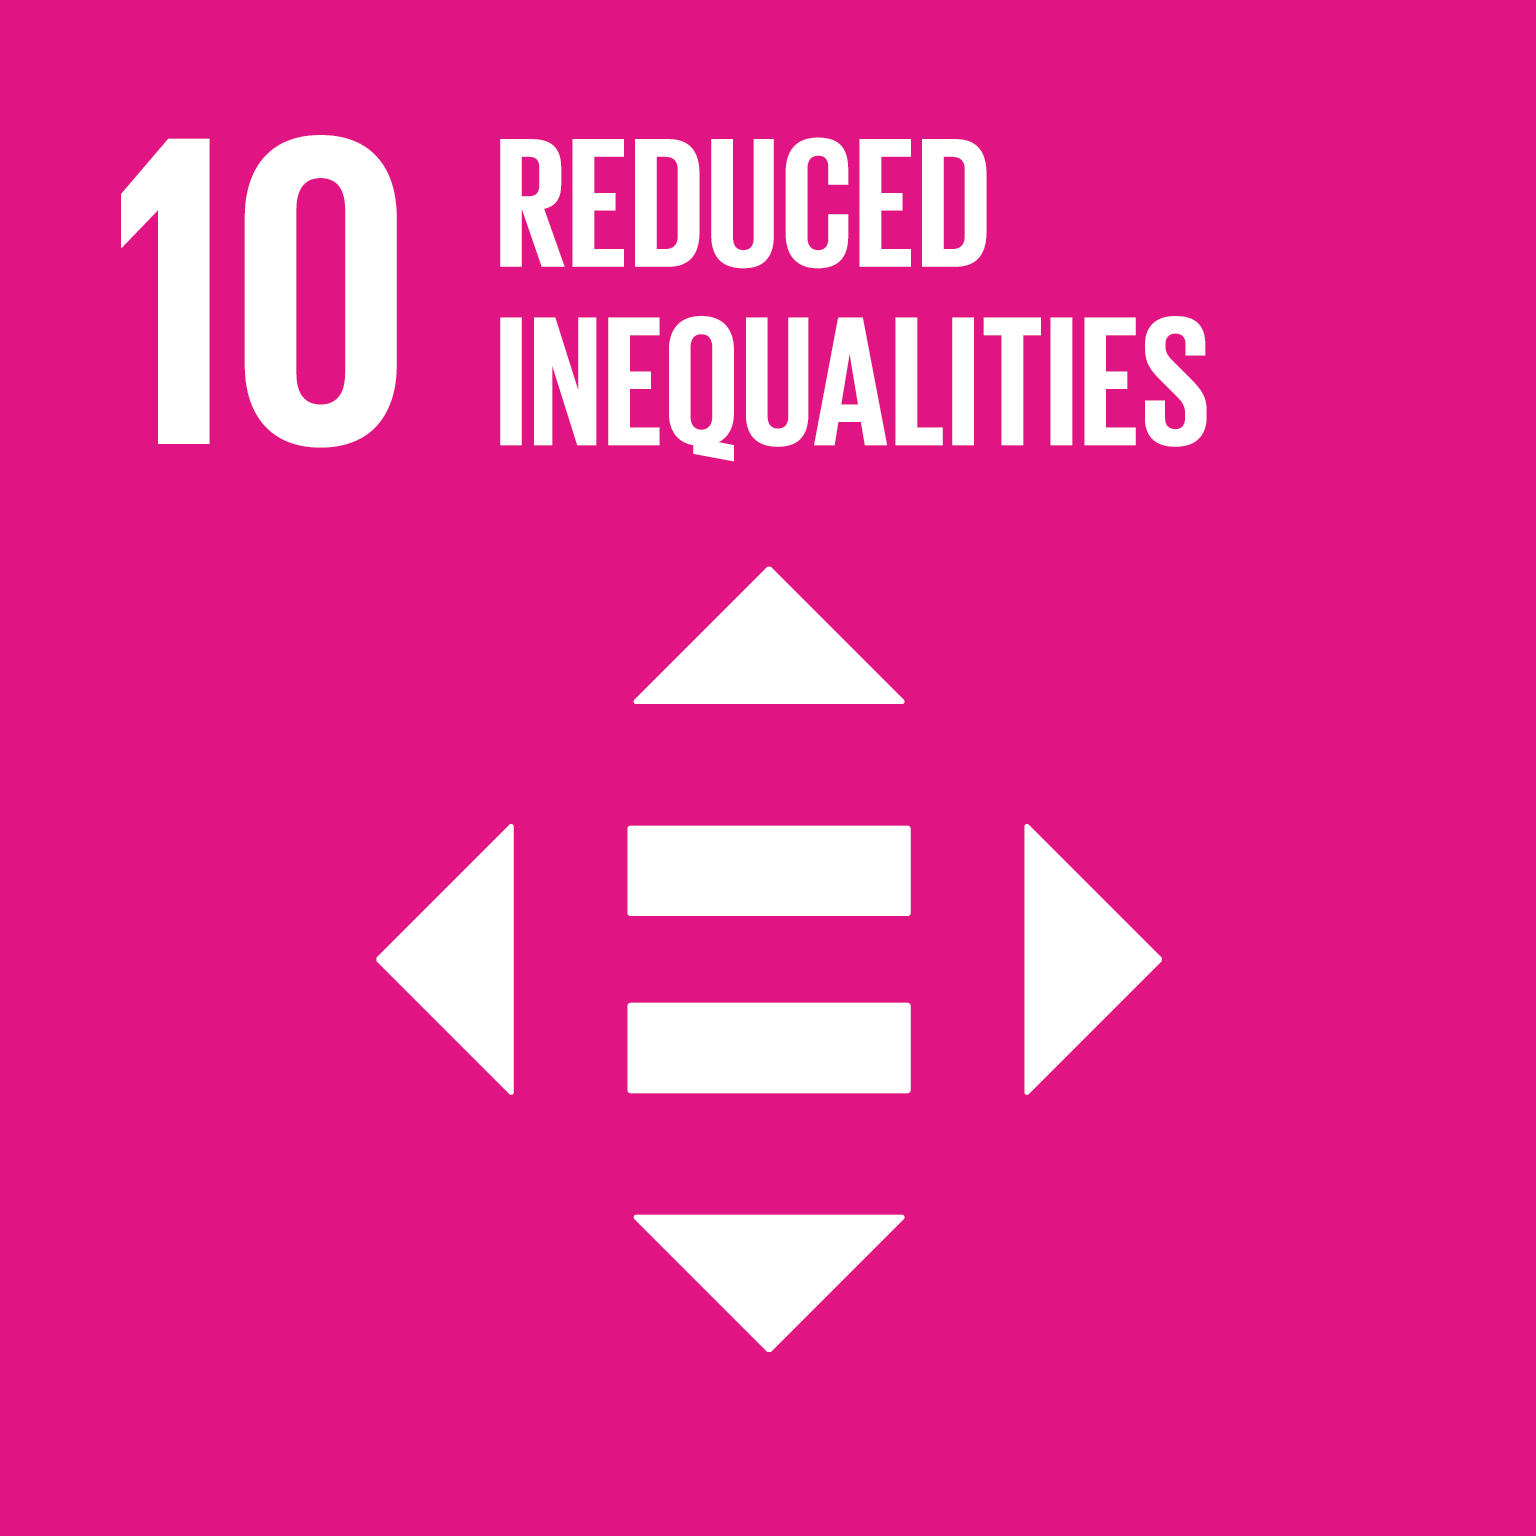 Reduced Inequalities Icon